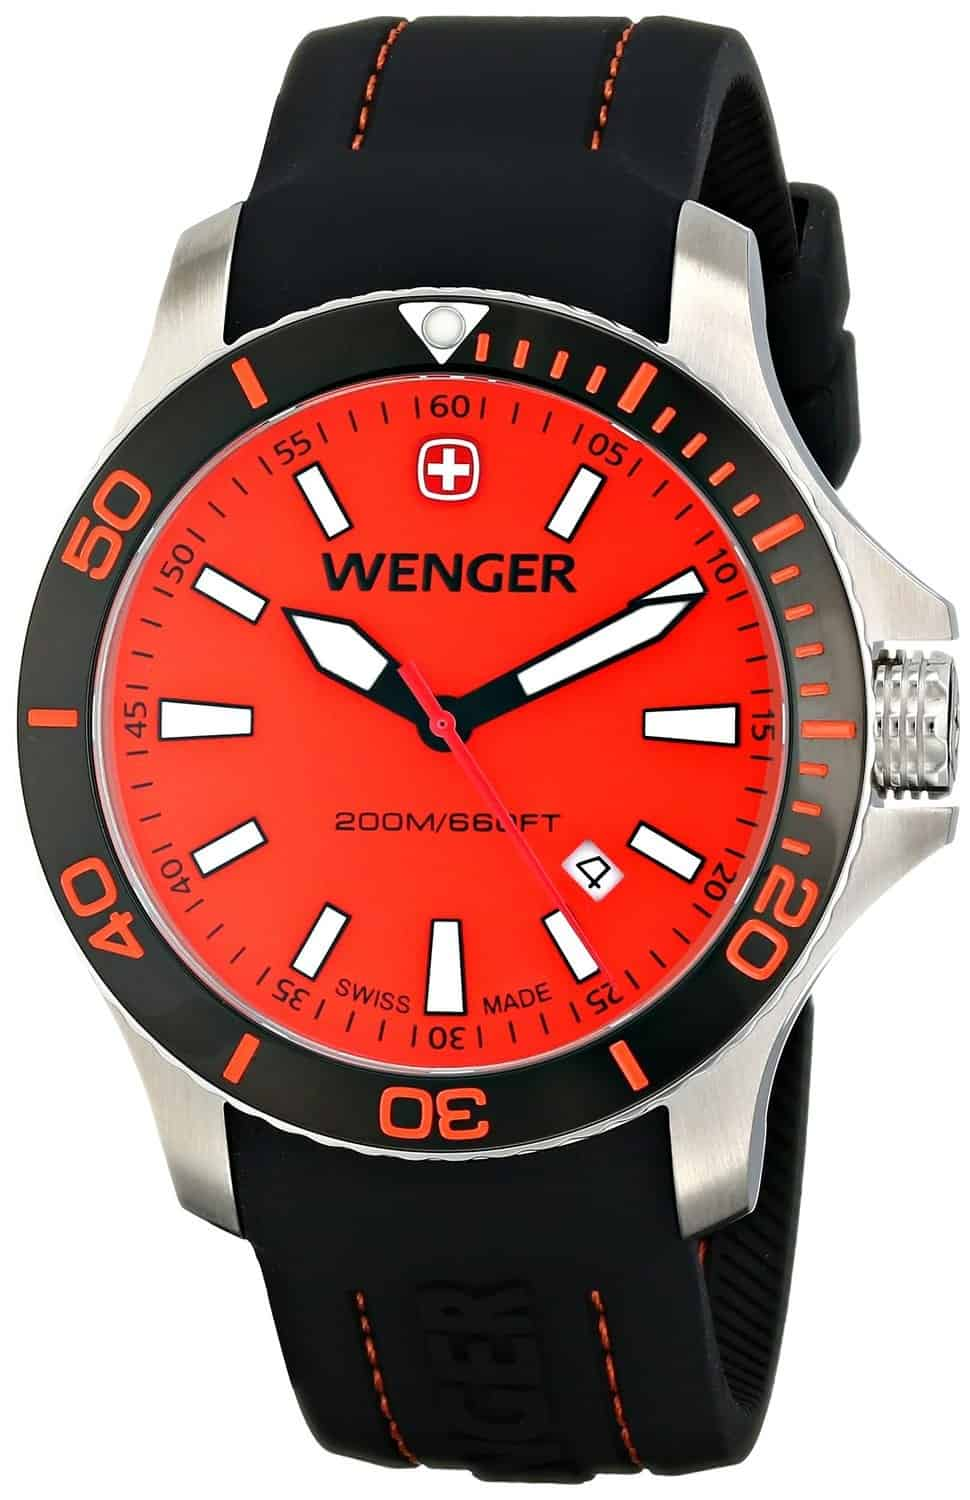 wenger_sea_force_01-0641-111_3